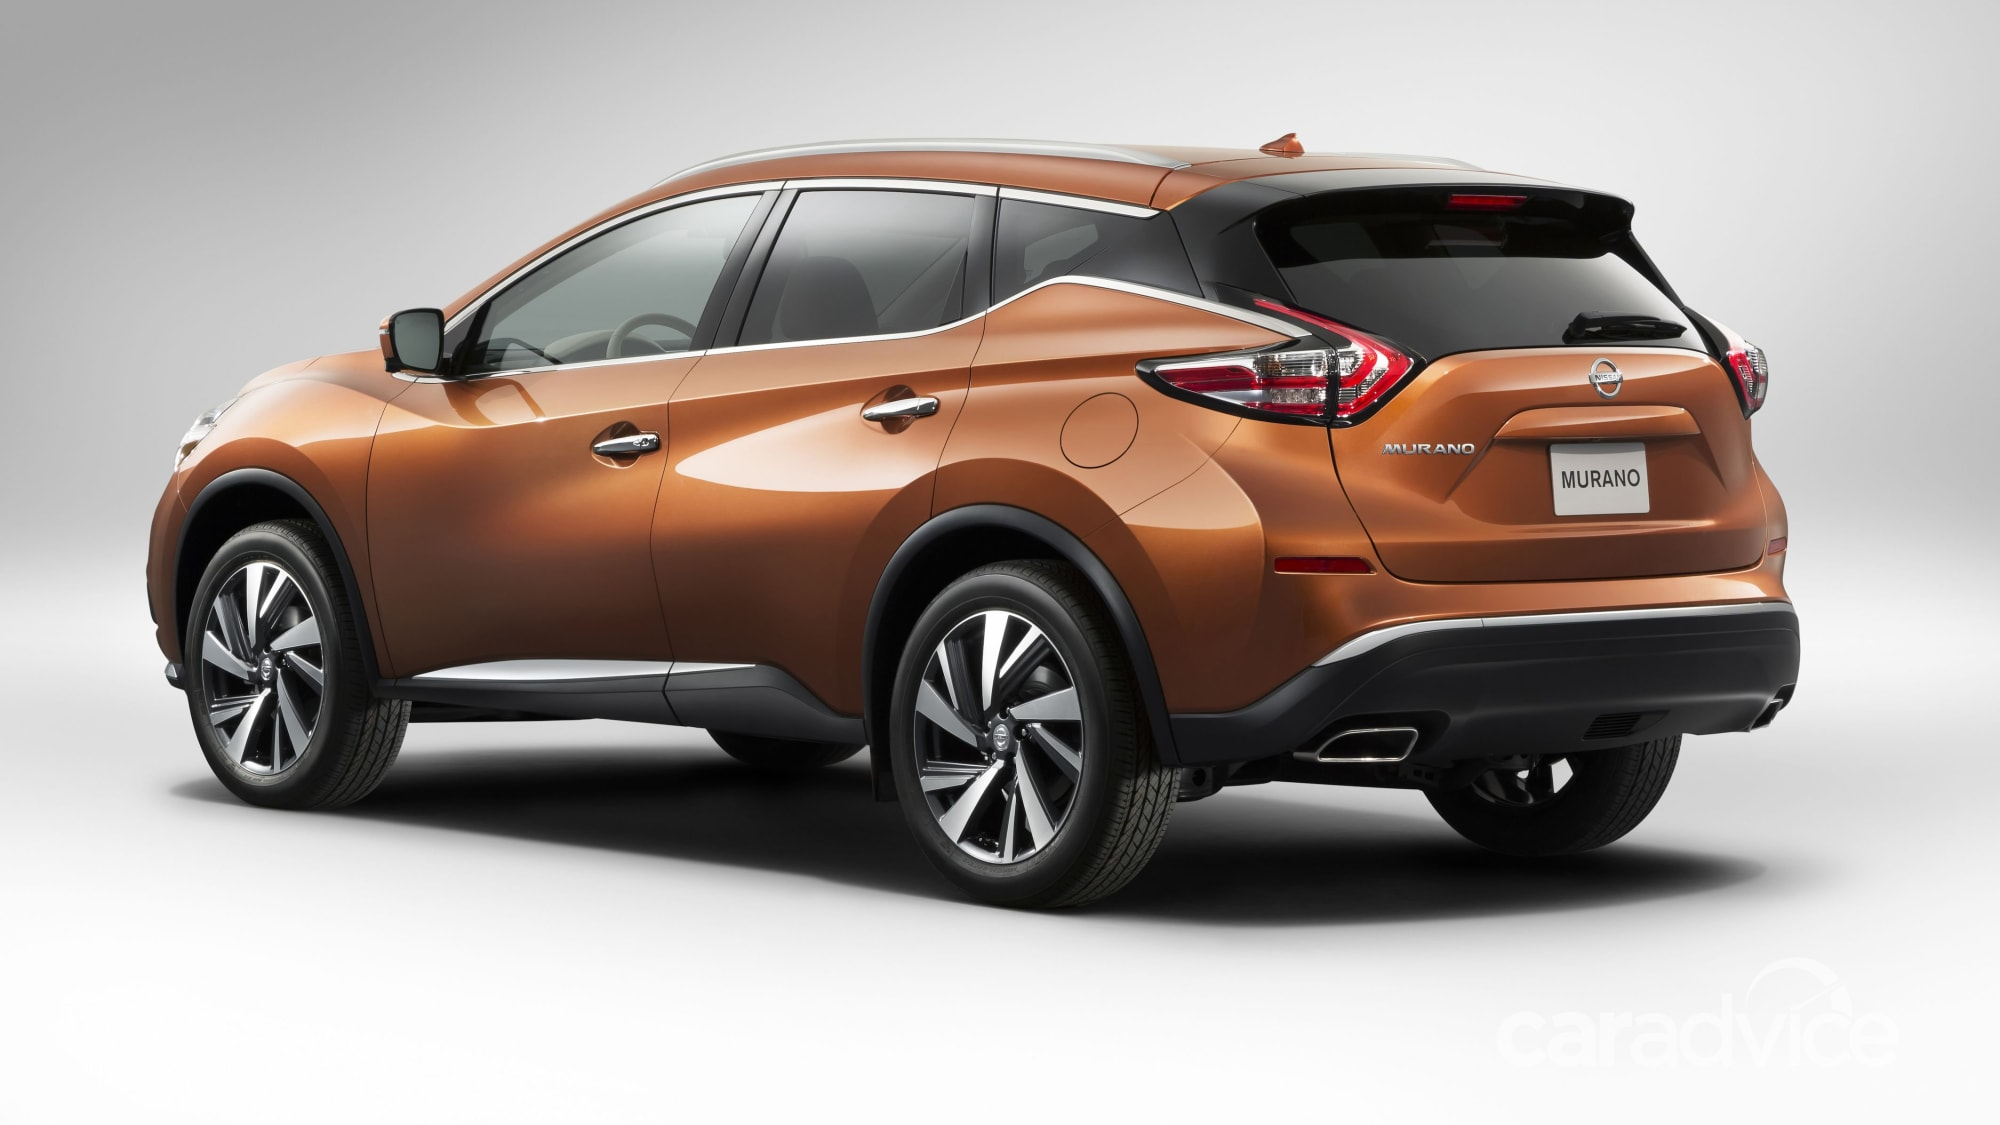 2015 Nissan Murano Revealed | Caradvice Throughout Canton Mississippi Trade Days Calendar